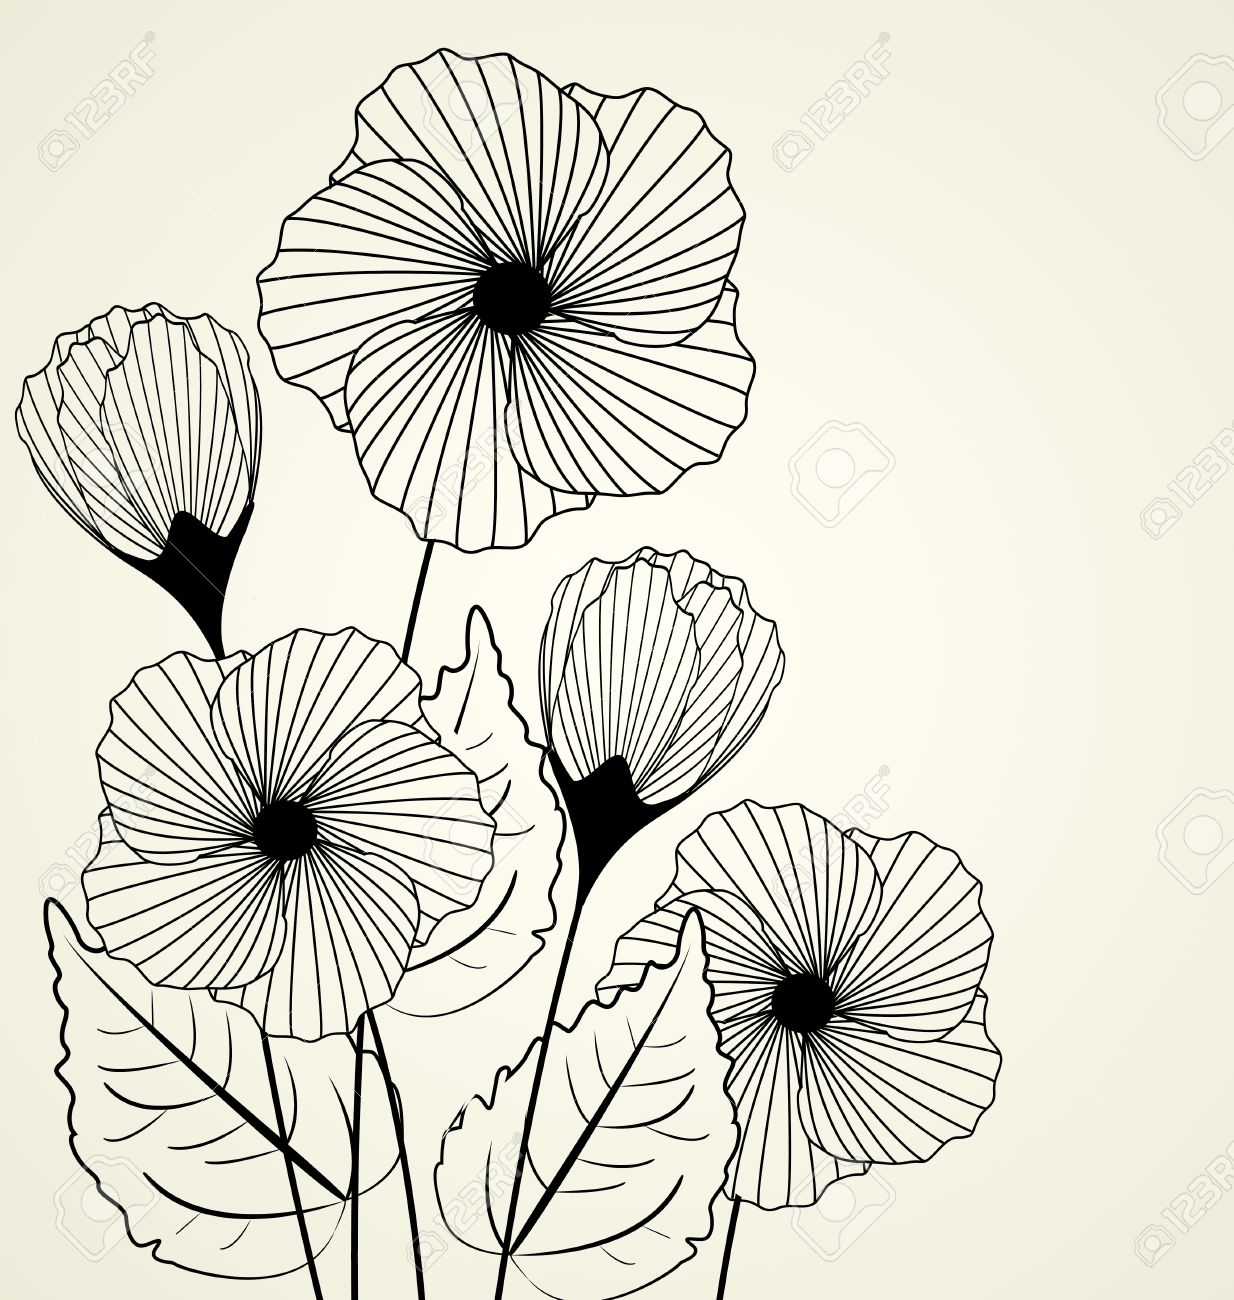 Flowers In The Wall Garden - Wall flower silhouette of garden flowers in the background illustration